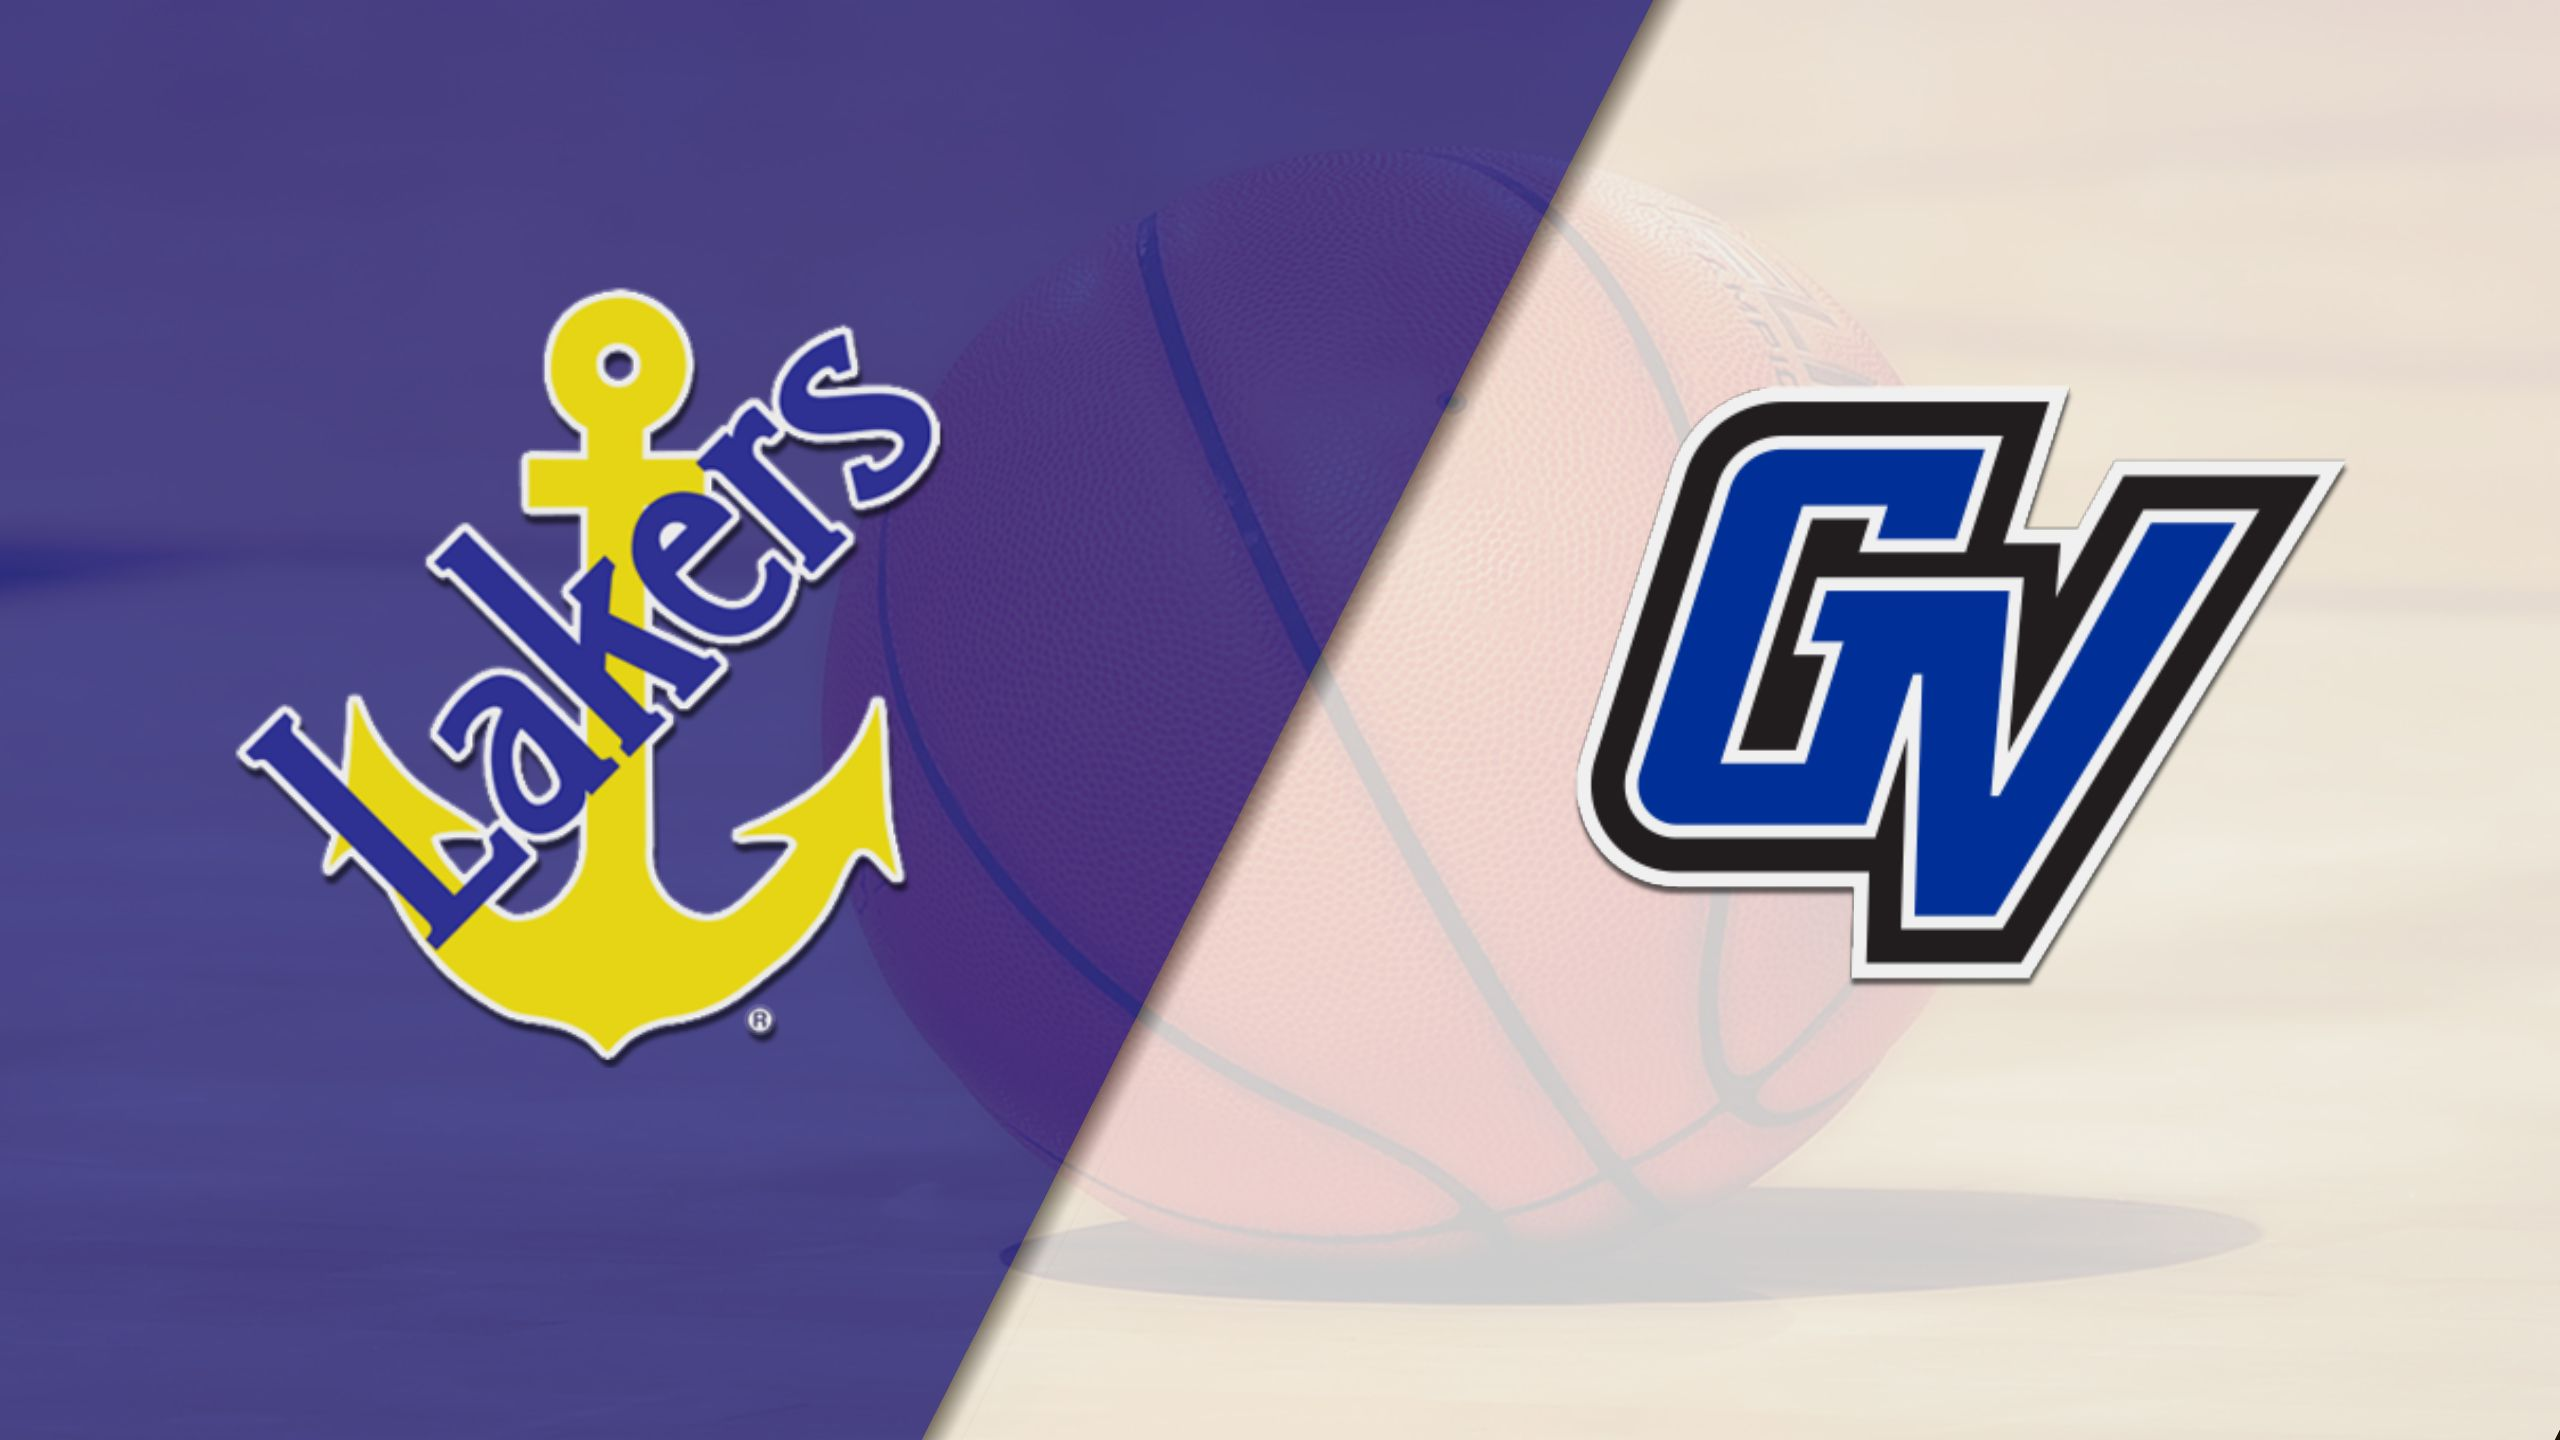 Lake Superior State vs. Grand Valley State (W Basketball)